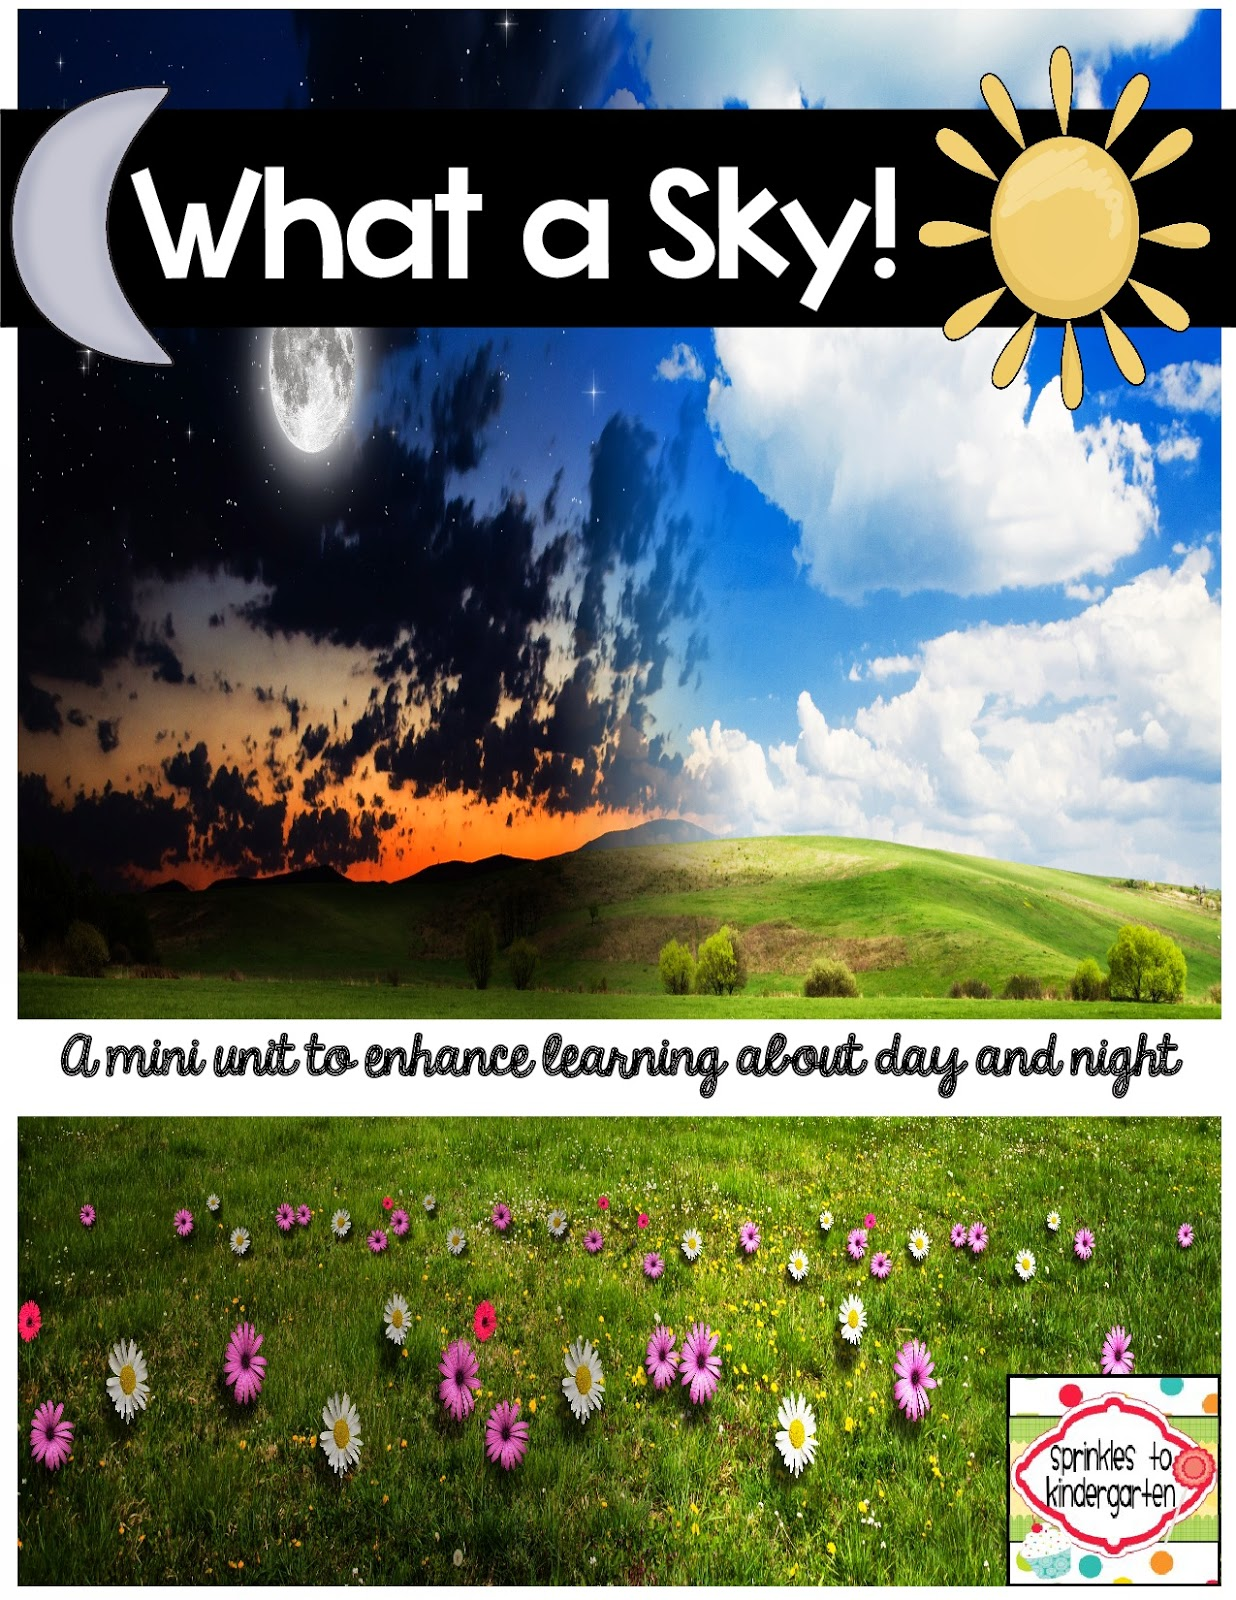 http://www.teacherspayteachers.com/Product/What-a-Sky-A-mini-unit-to-enhance-learning-about-day-and-night-1620279